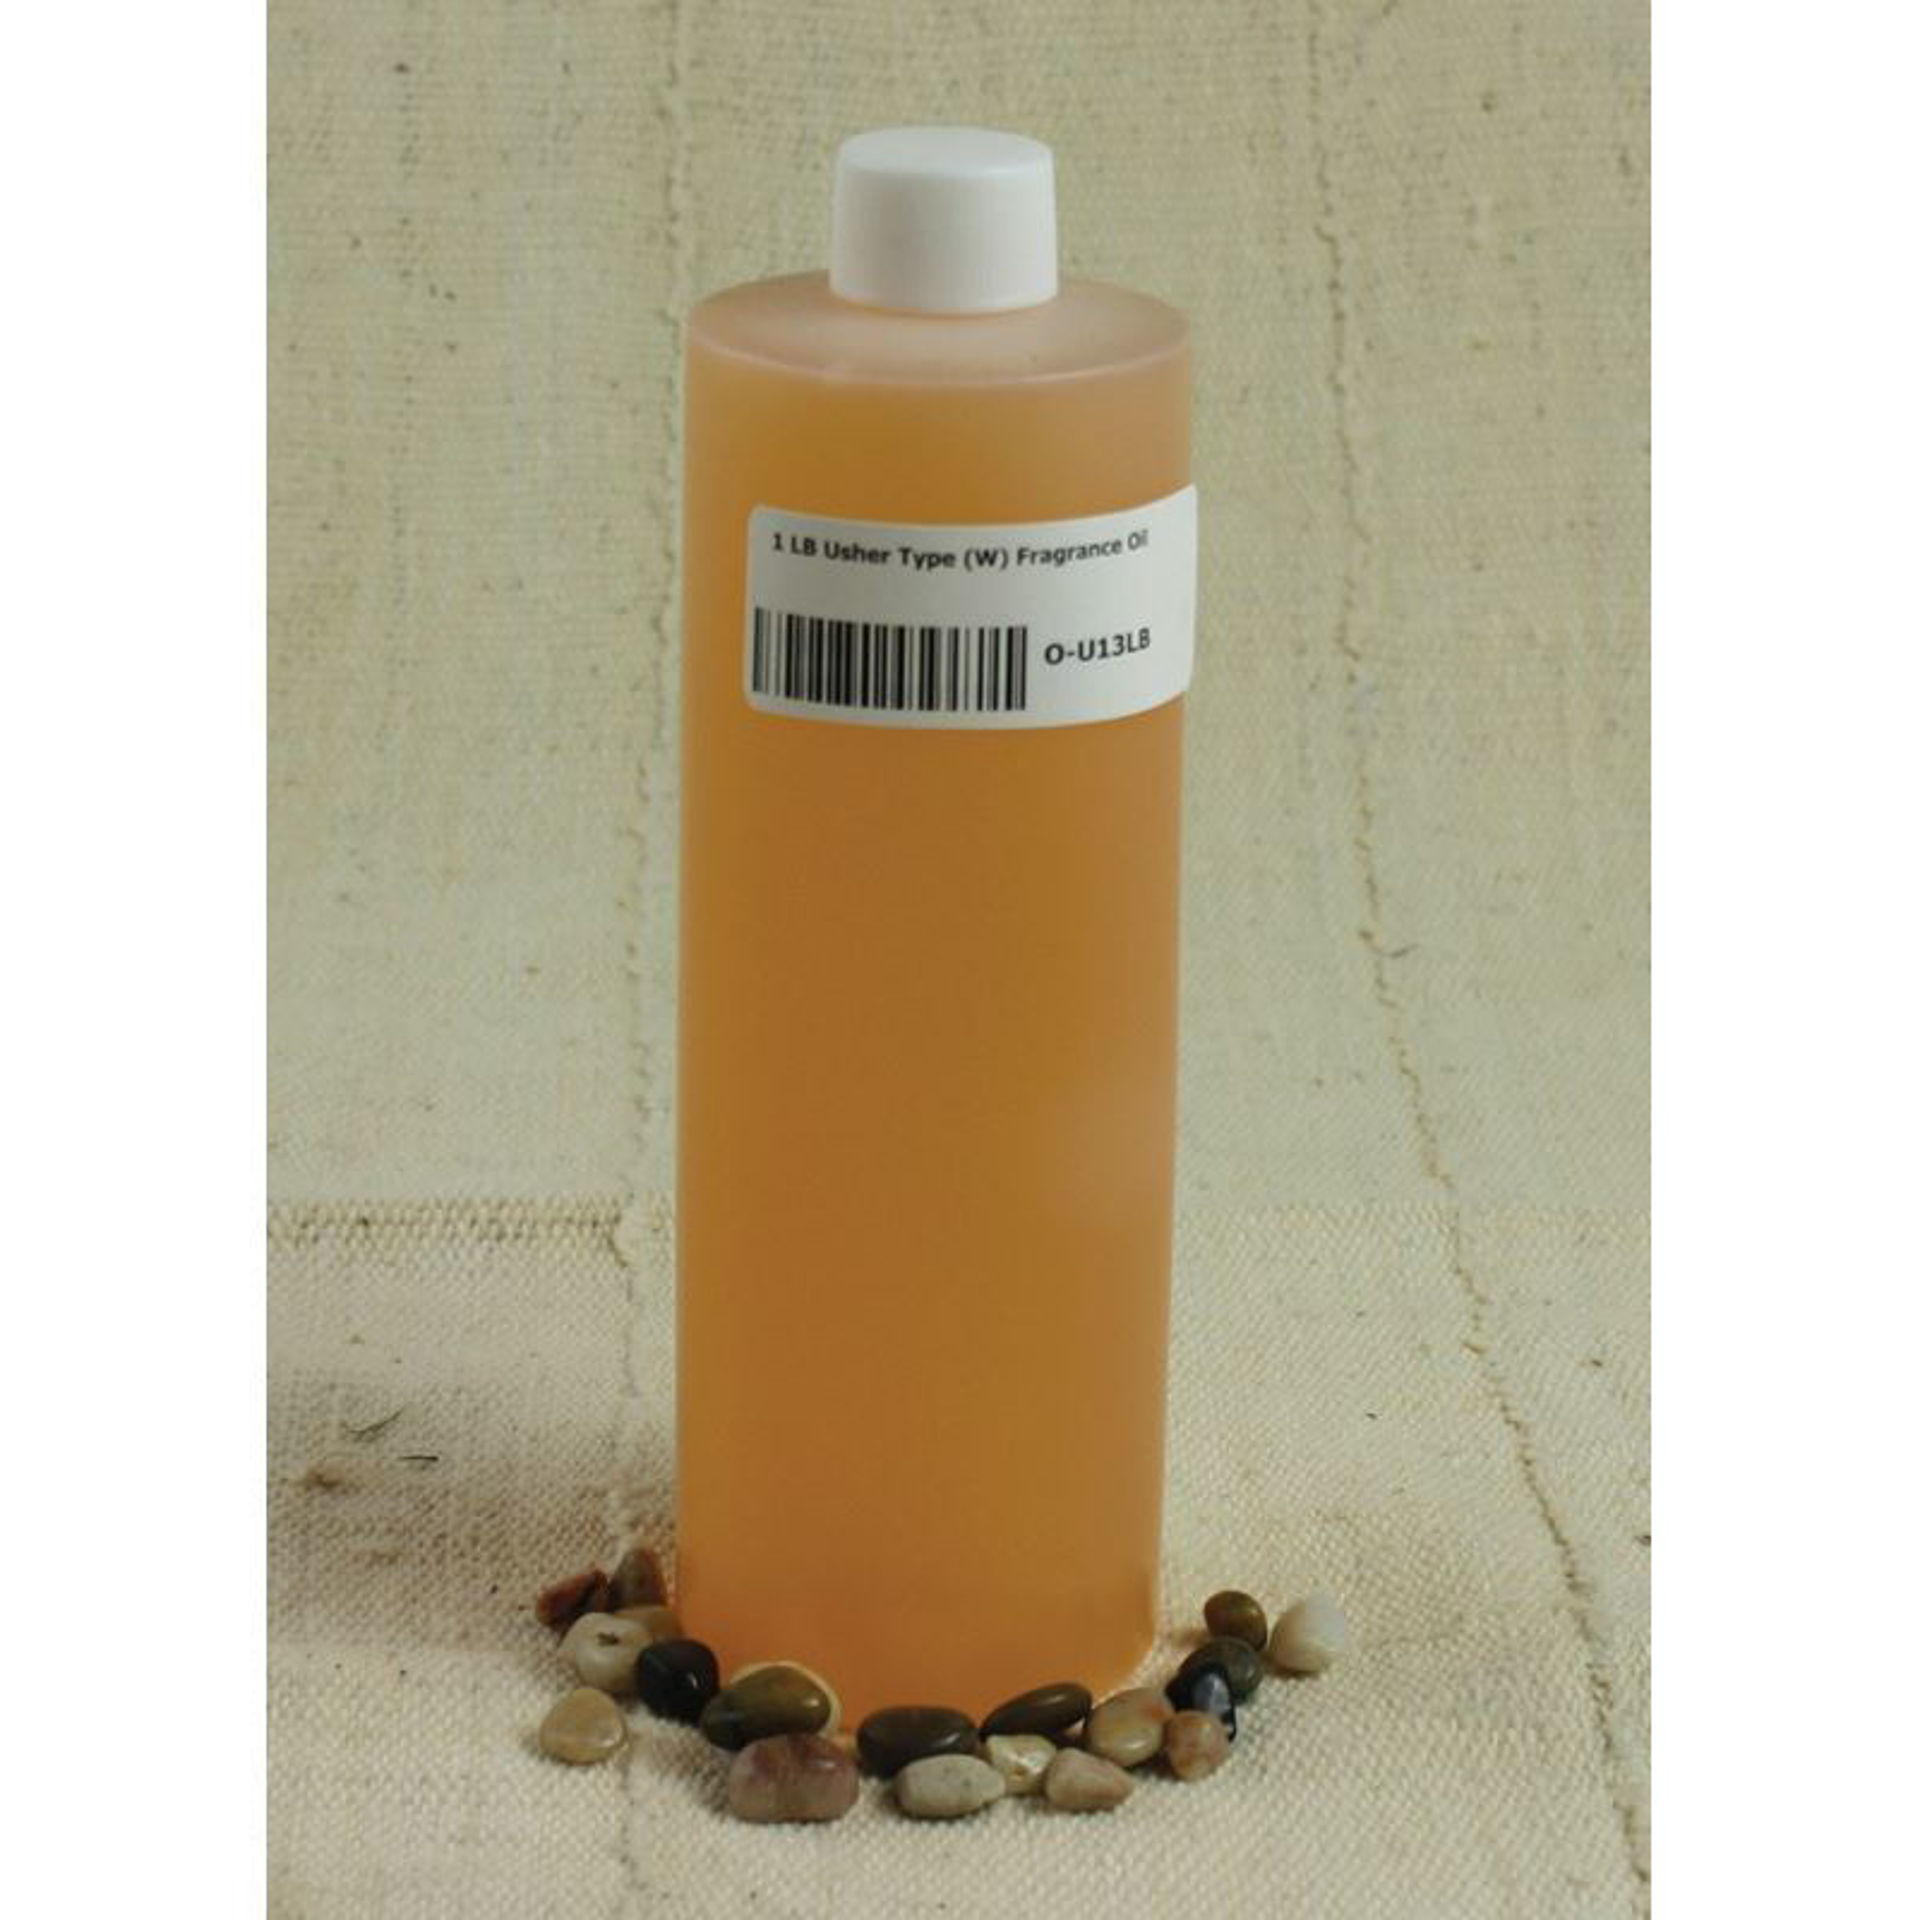 Picture of 1 Lb Usher (W) Type Fragrance Oil